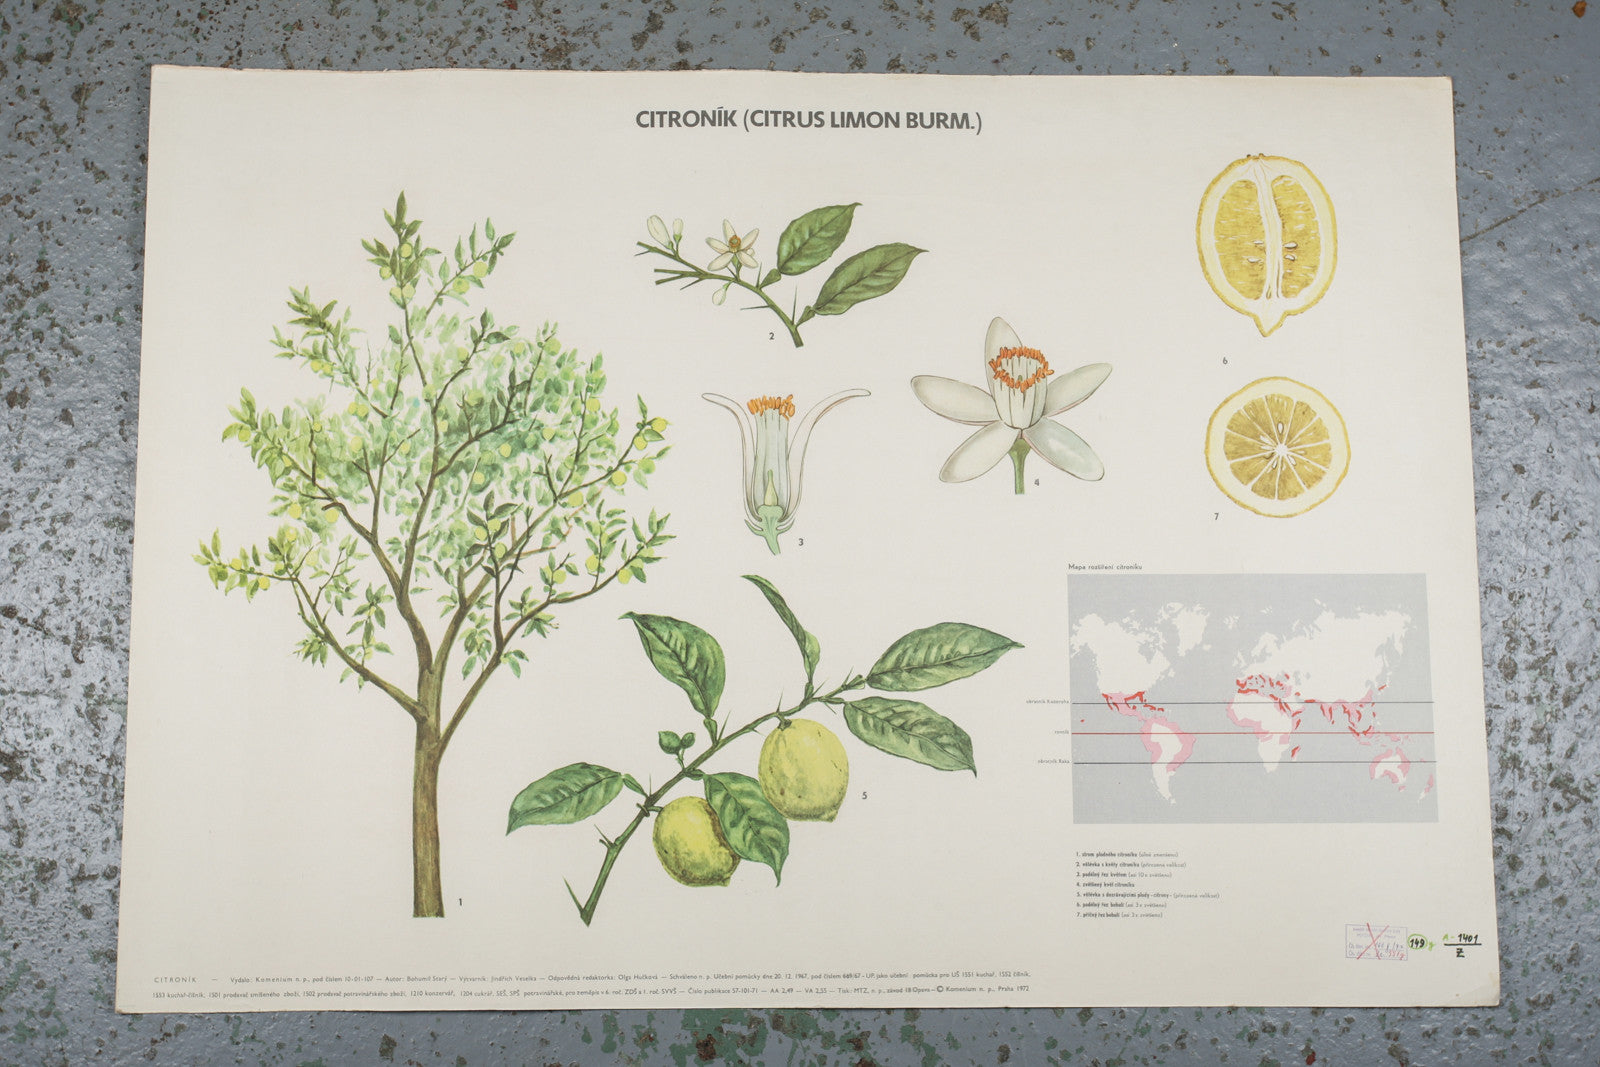 A 1972 botanical school wall chart of a lemon available for sale from Industrious Interiors, an online vintage furniture and homeware store based in Nottingham, England.